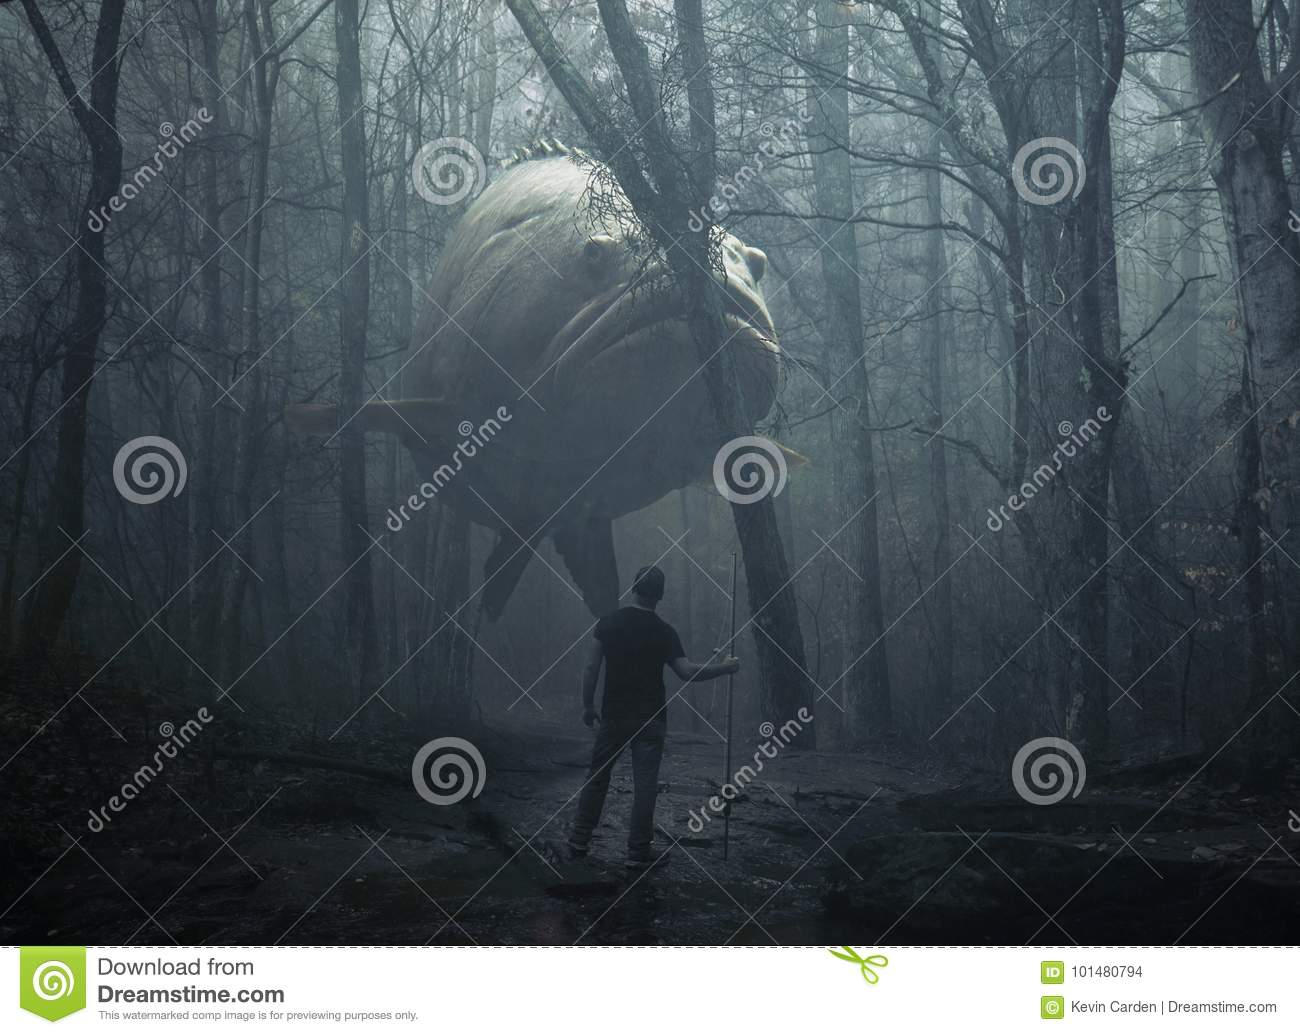 Large fish in the forest